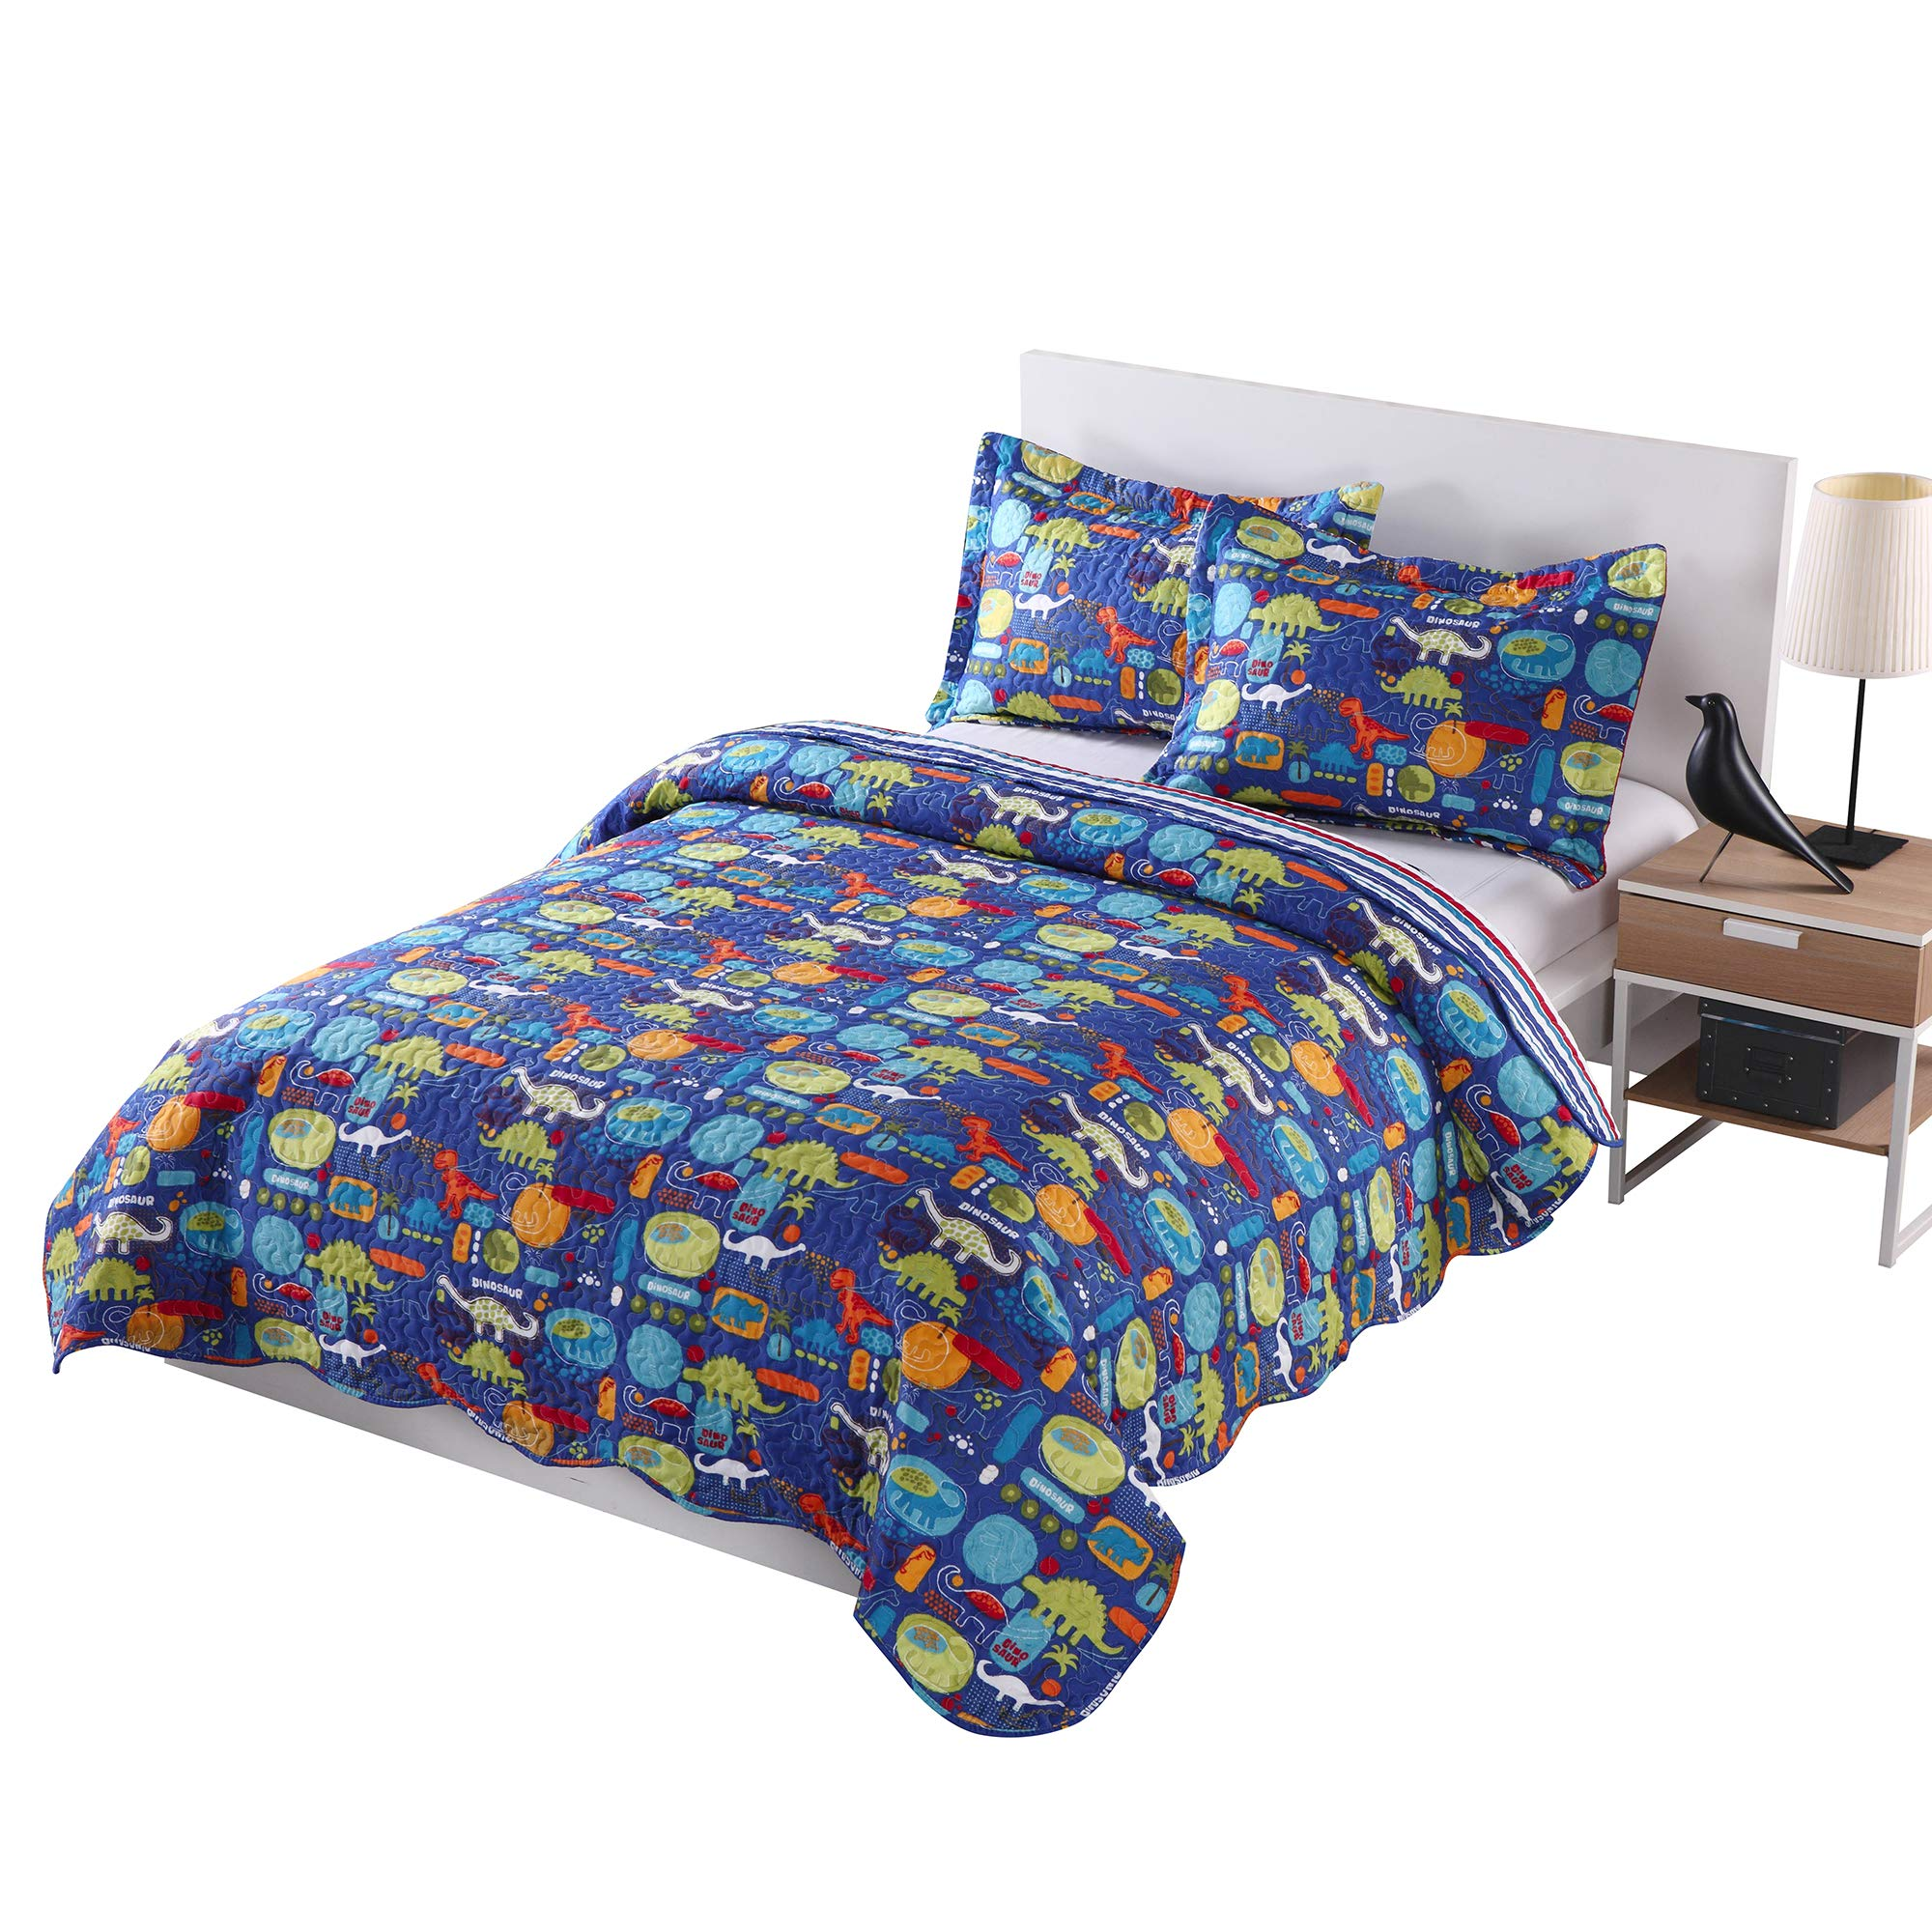 MarCielo 3 Piece Kids Bedspread Quilts Set Throw Blanket for Teens Boys Girls Bed Printed Bedding Coverlet, Full Size, Dinosaur (Full) by MarCielo